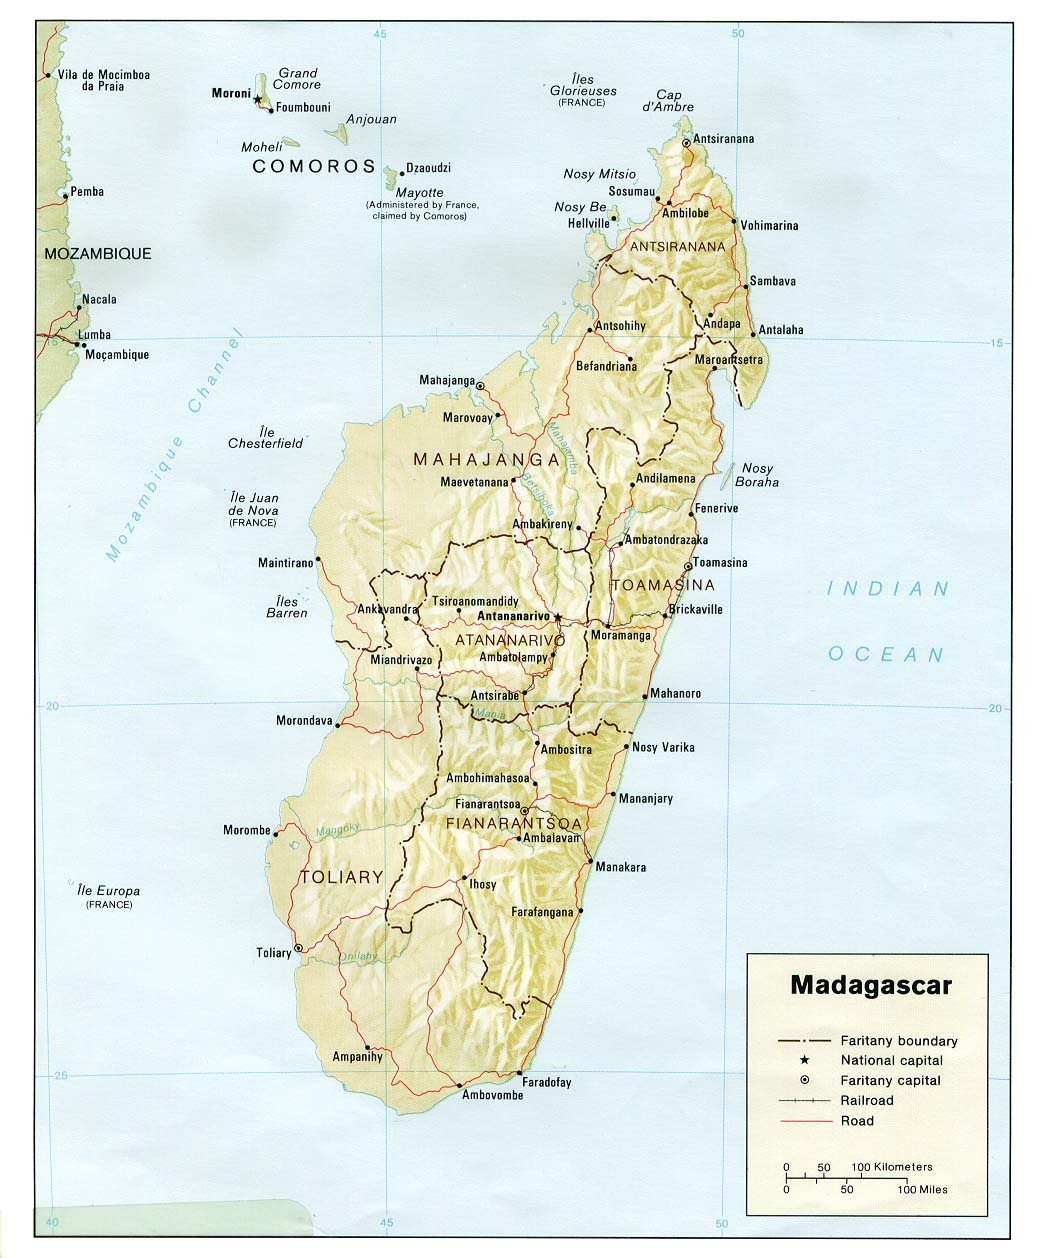 Map Of Africa Madagascar.Madagascar Maps Perry Castaneda Map Collection Ut Library Online